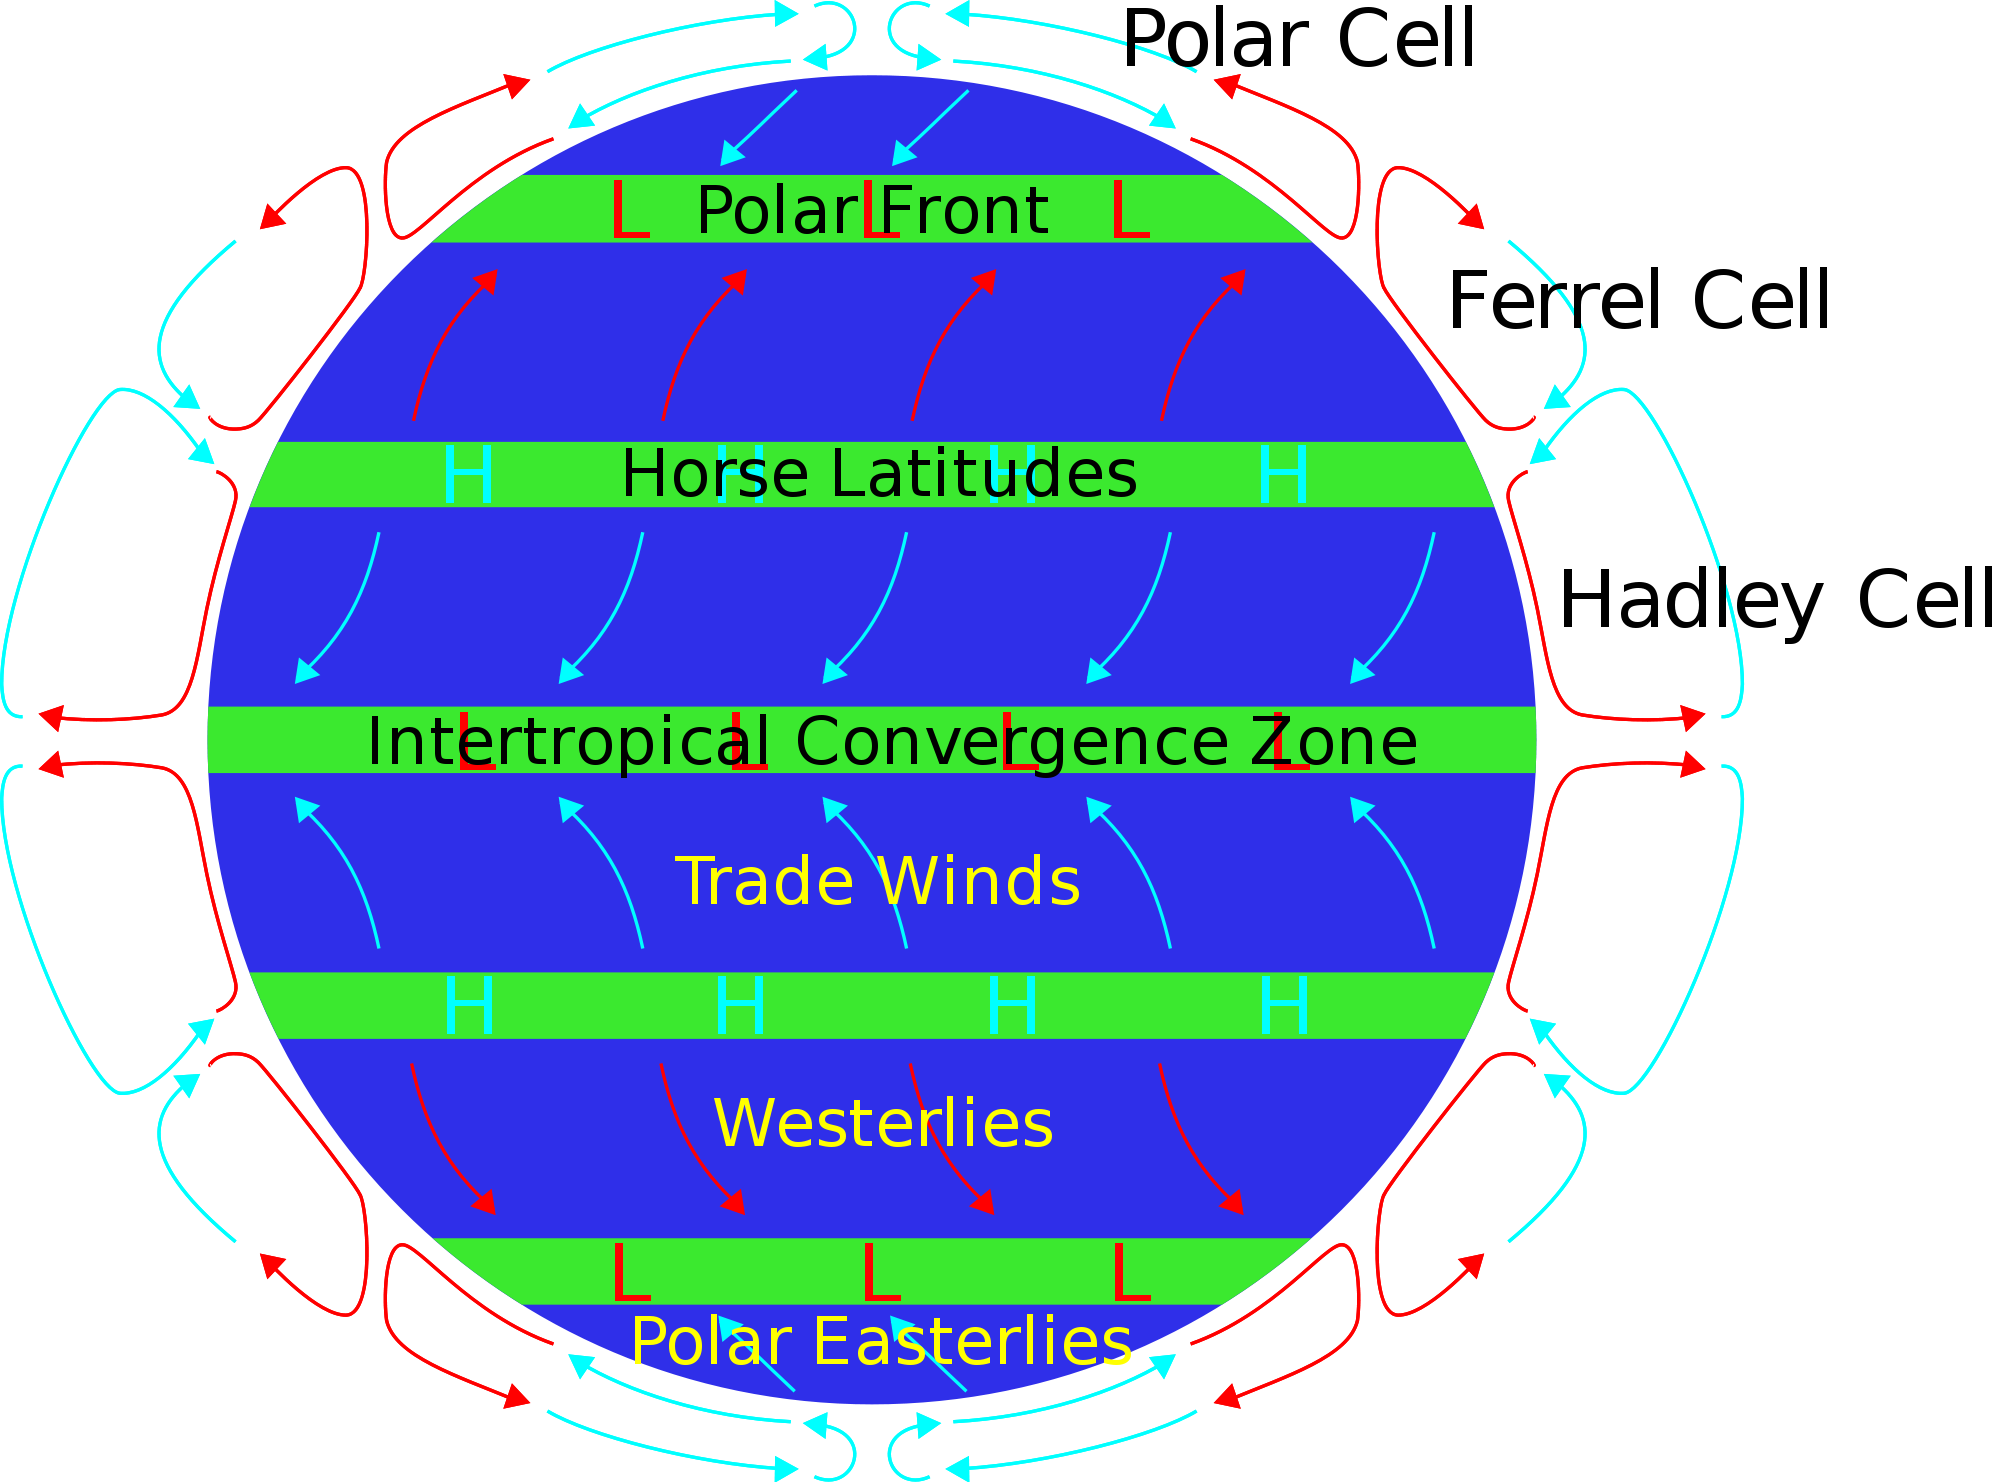 Convection drawing ocean current. Horse latitudes wikipedia a